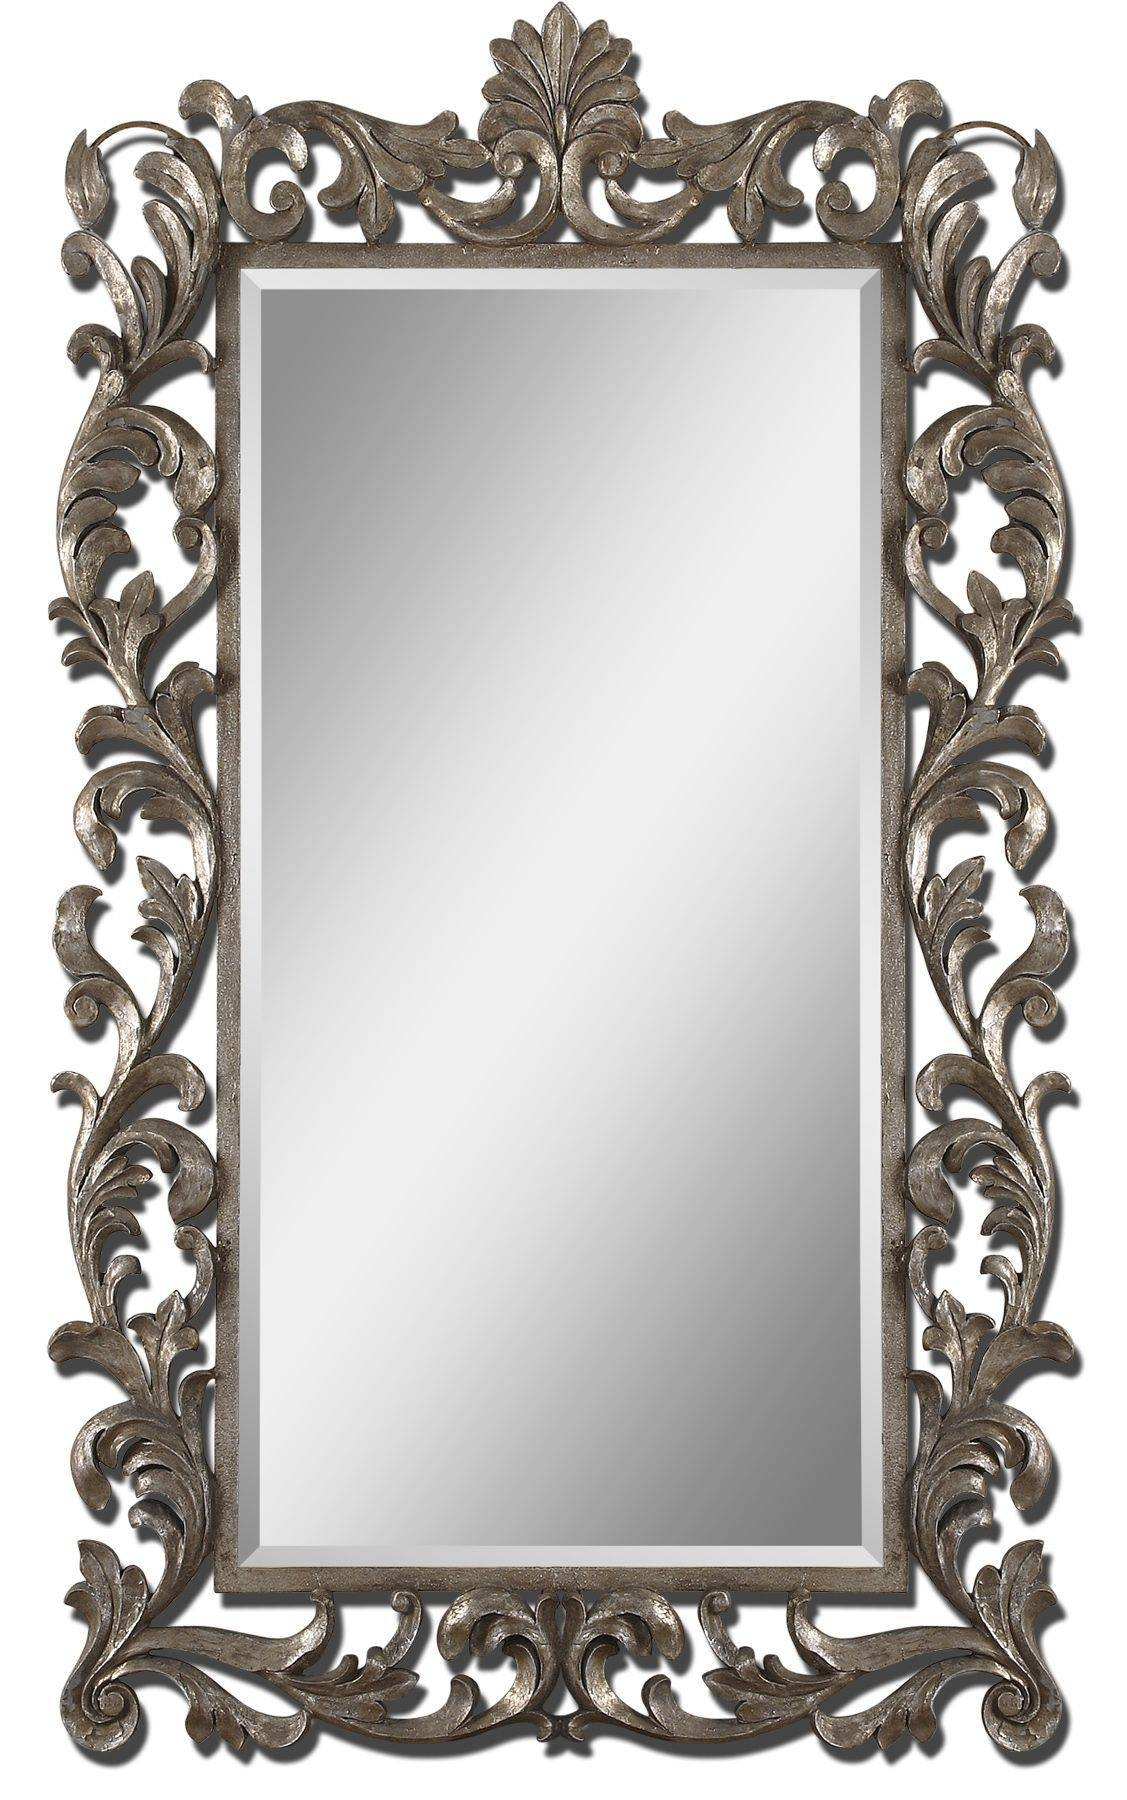 Uttermost Molise Large Silver Mirror 12824 in Ornate Silver Mirrors (Image 25 of 25)